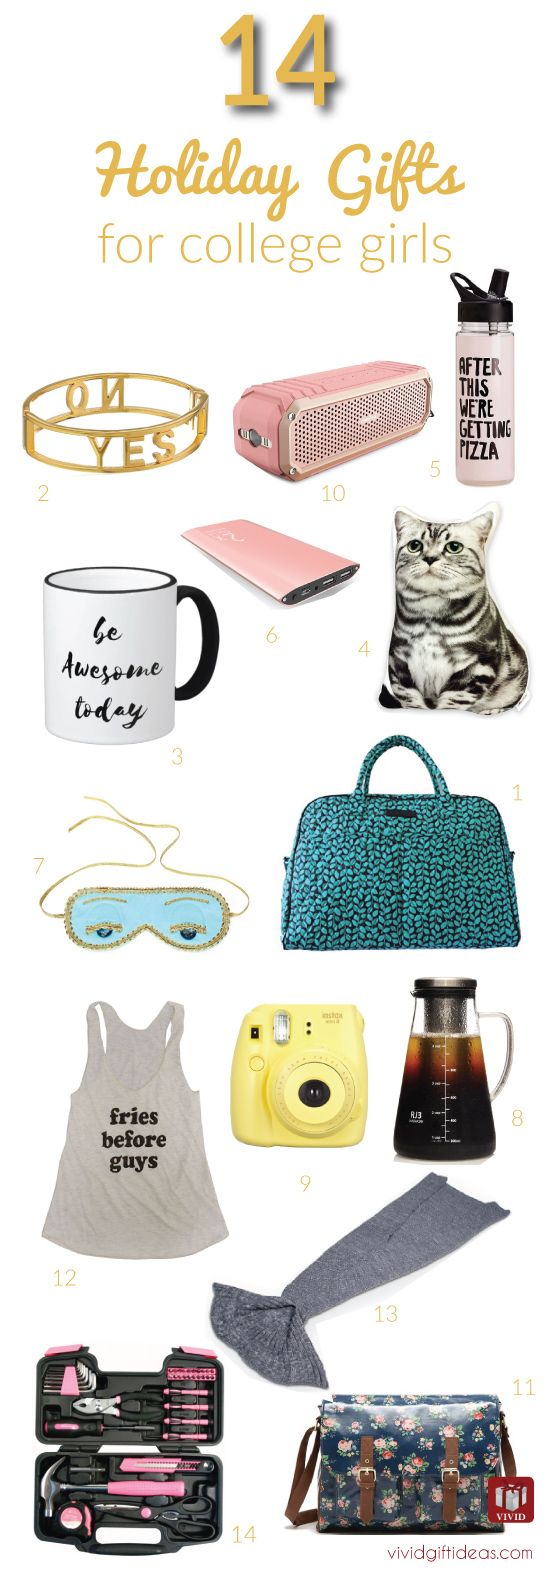 13 best images about wishlist on Pinterest | Gifts, Christmas gift ...